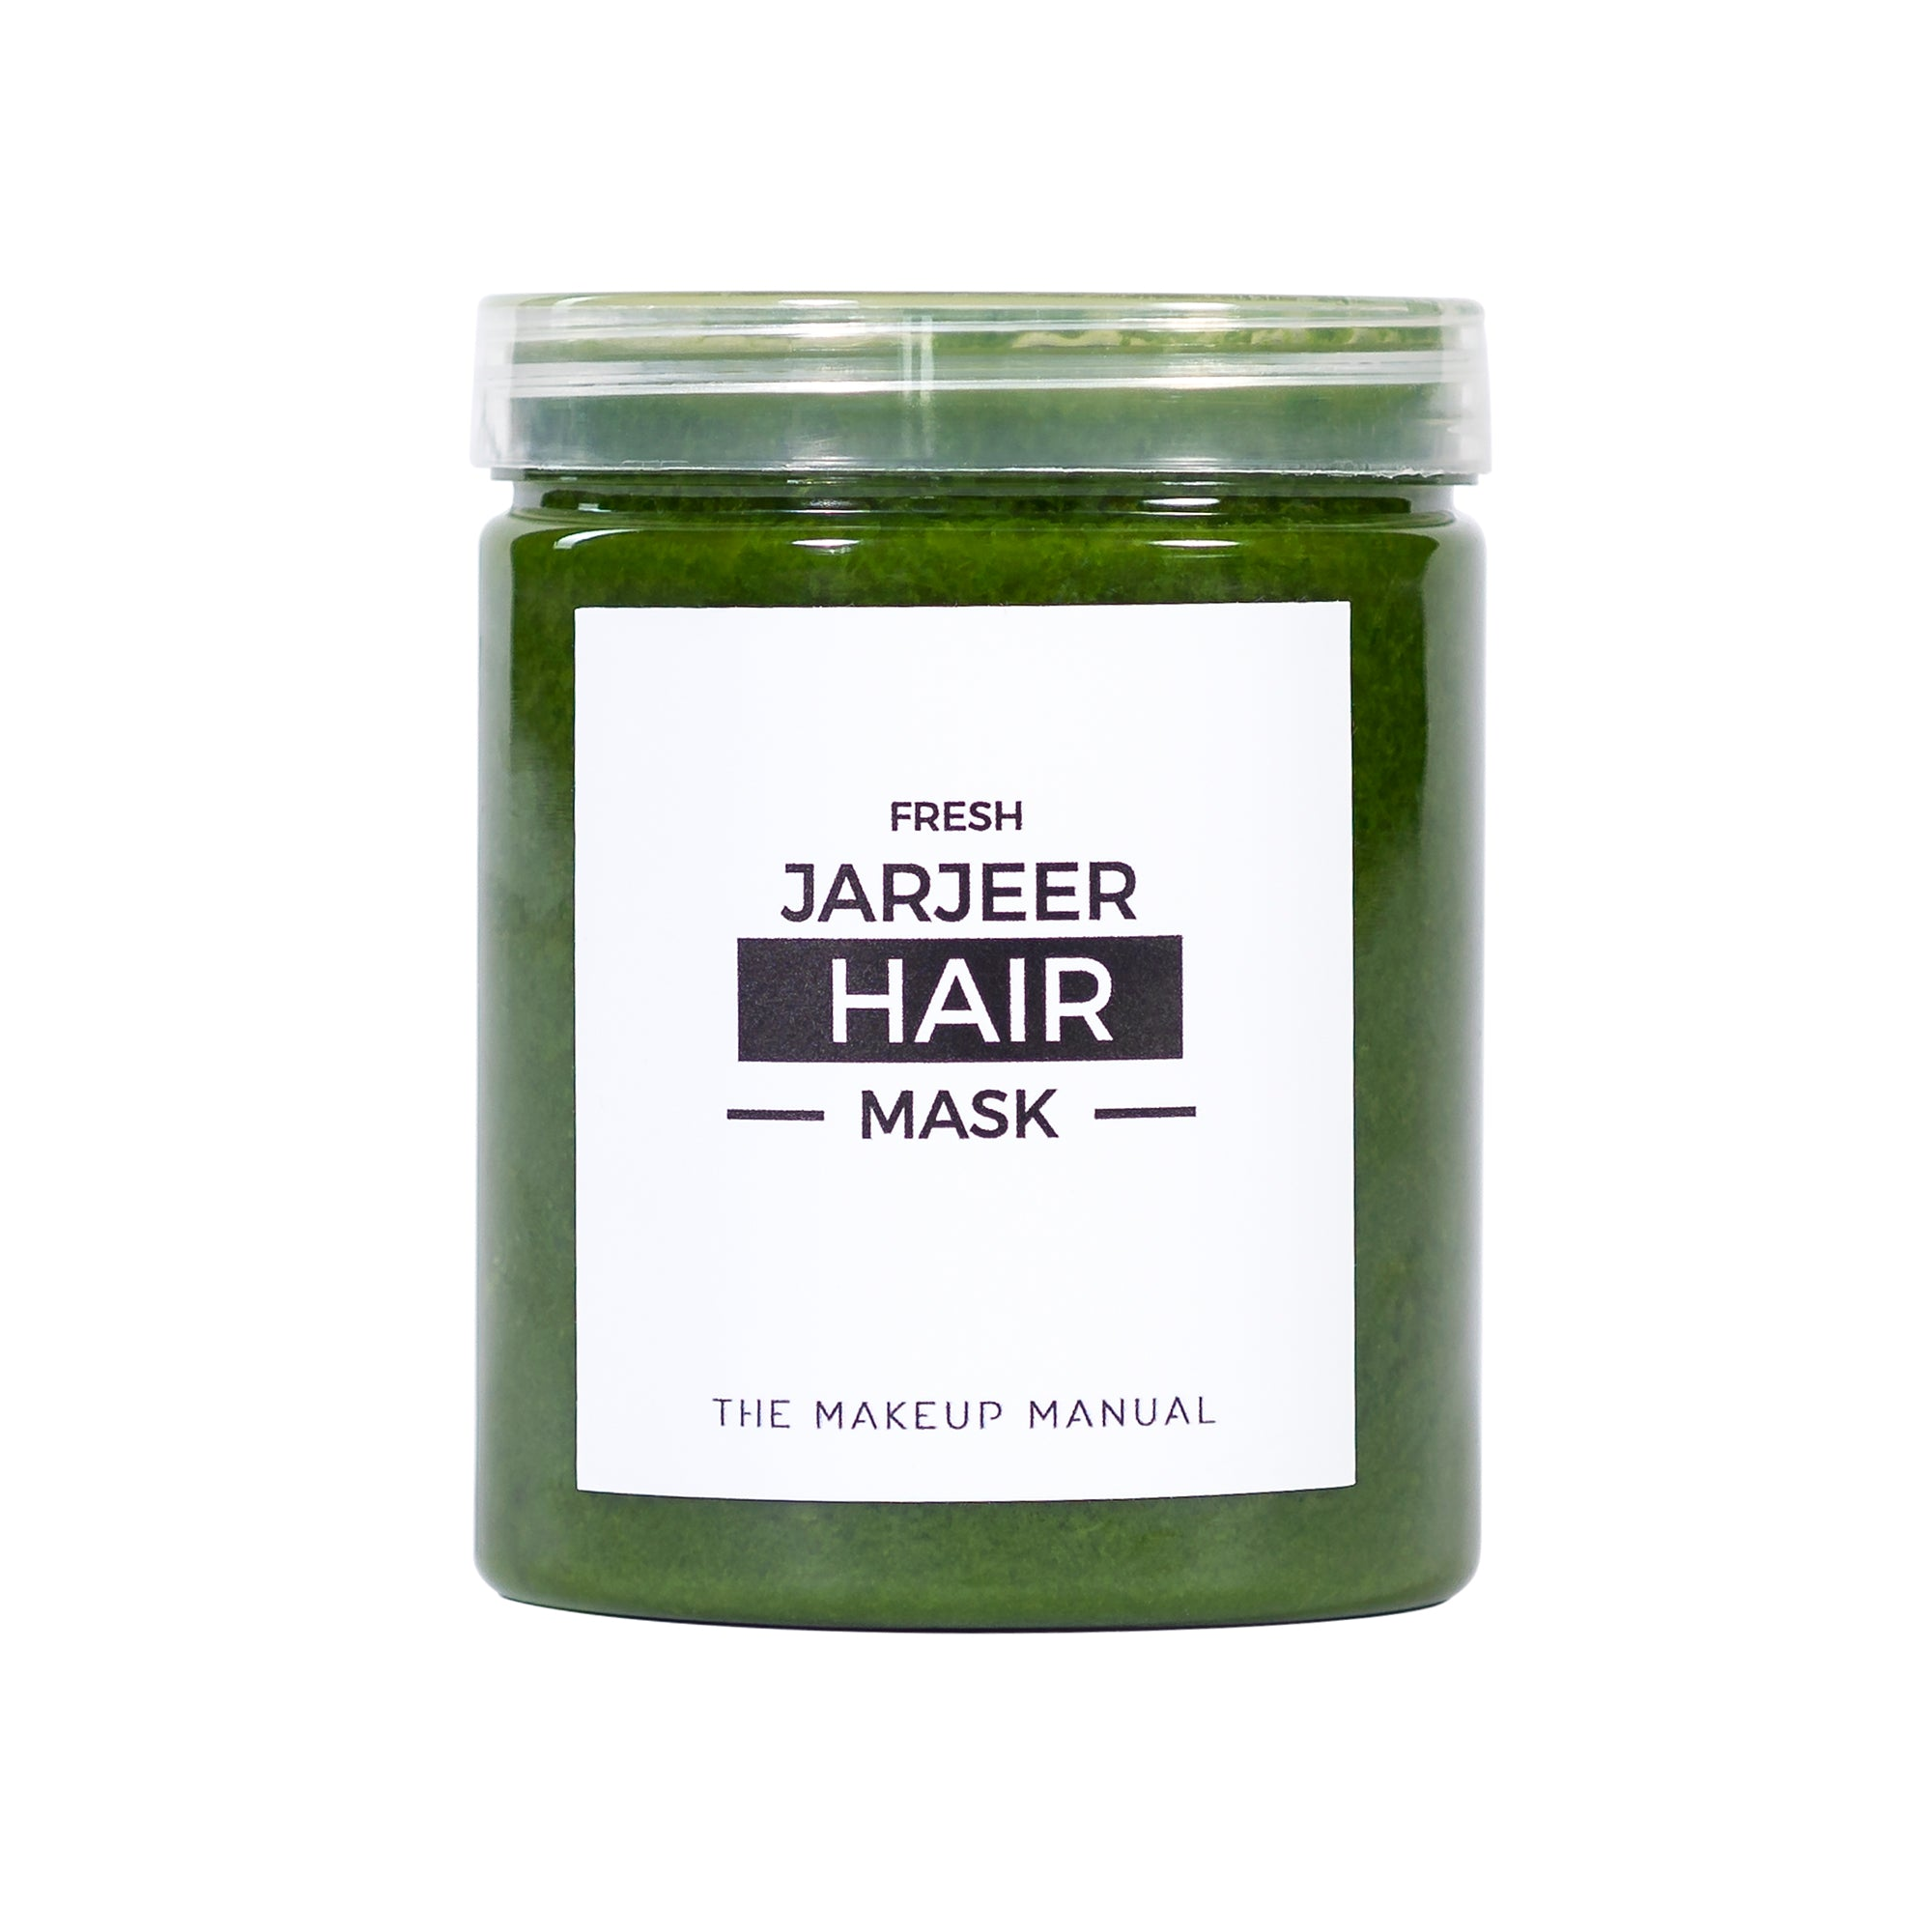 FRESH JARJEER HAIR MASK